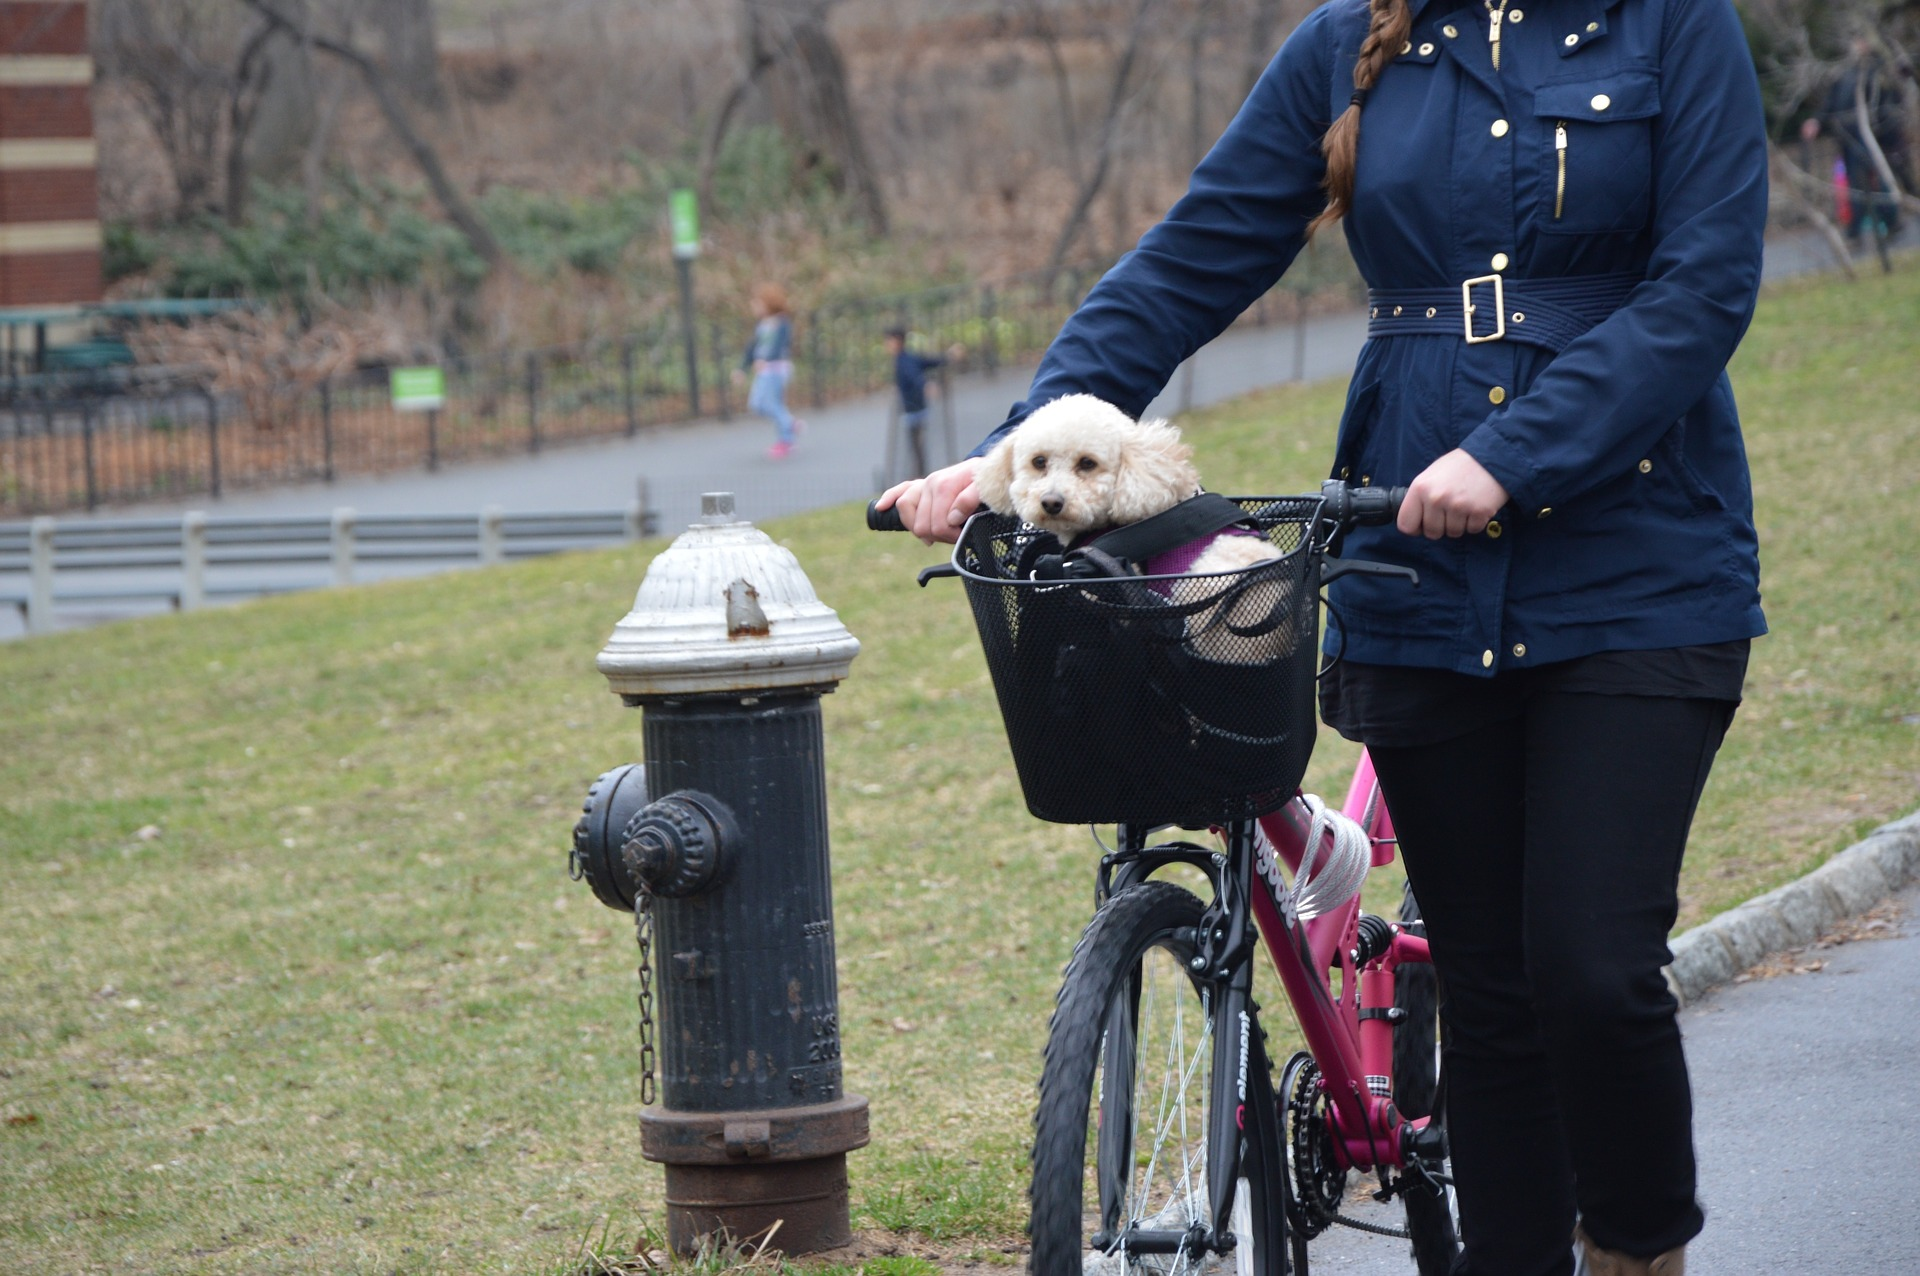 Poodle riding in bike basket